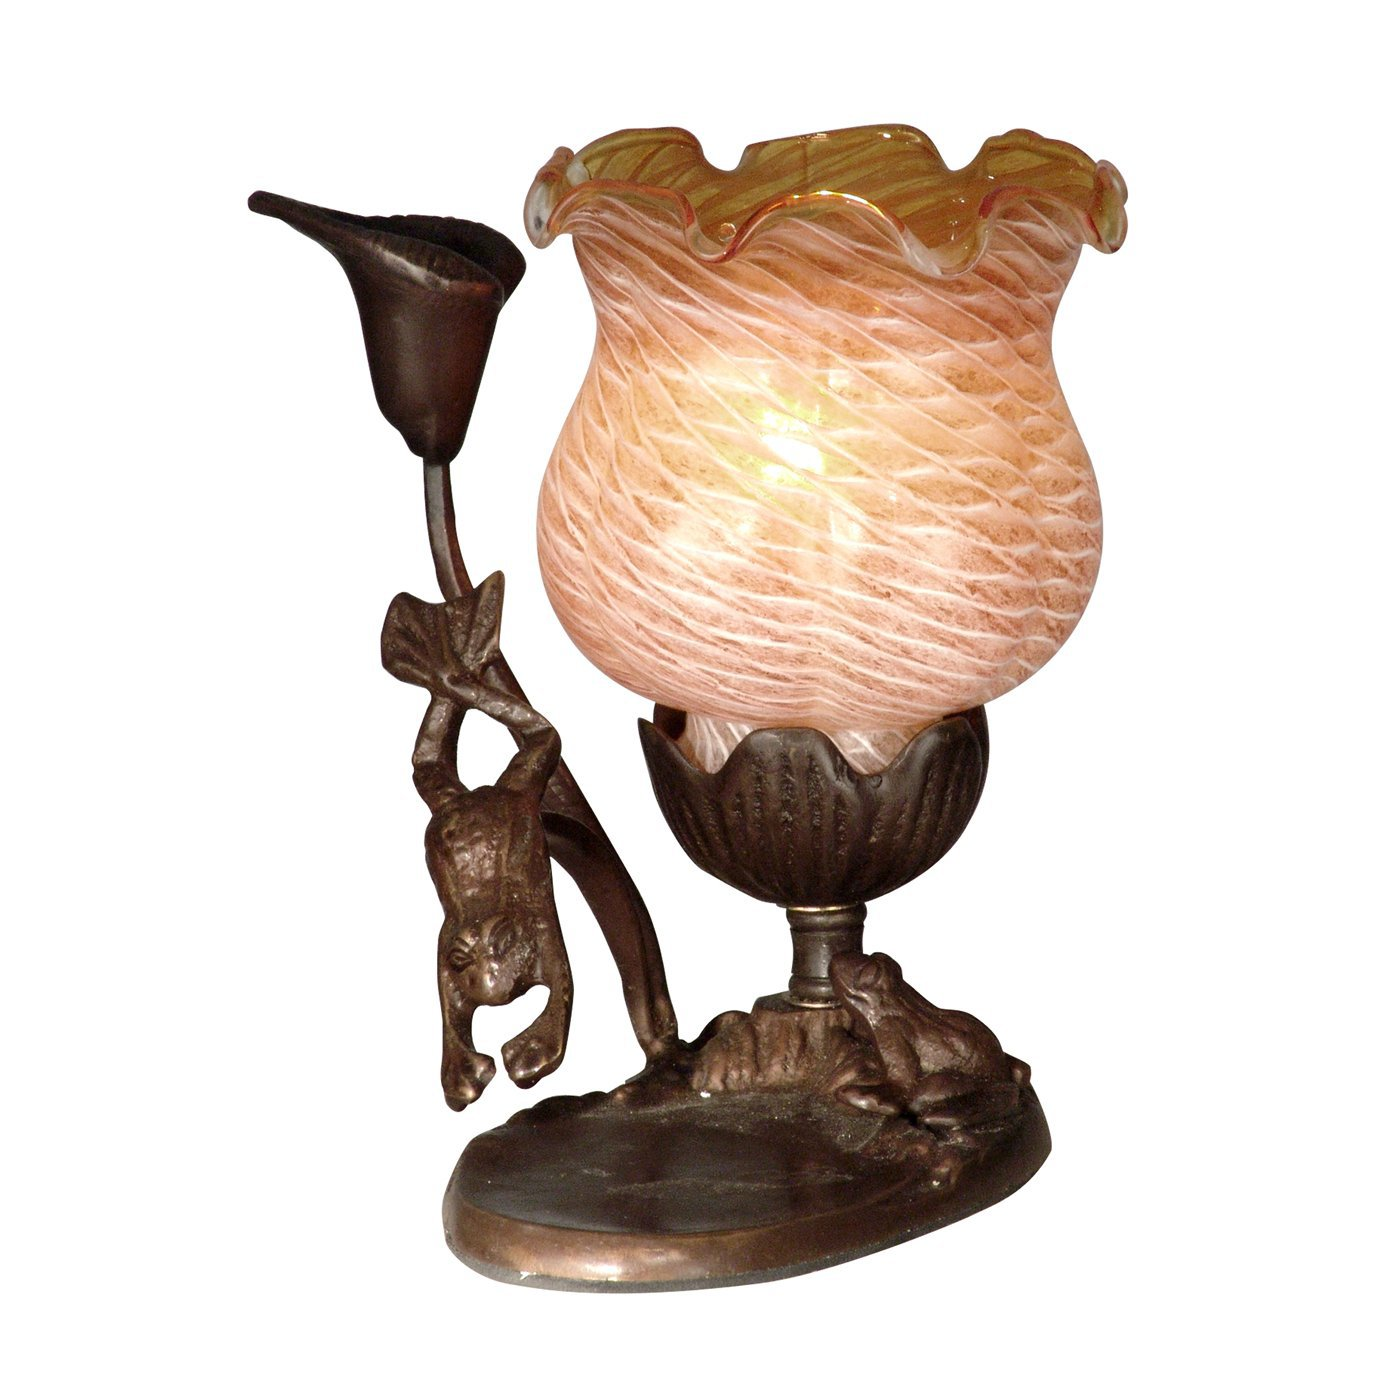 dale tiffany tulip accent lamp amber atg table tulips lamps decorative accessories for dining room coffee end tables steel desk legs gold home tiny corner bathroom decor ideas